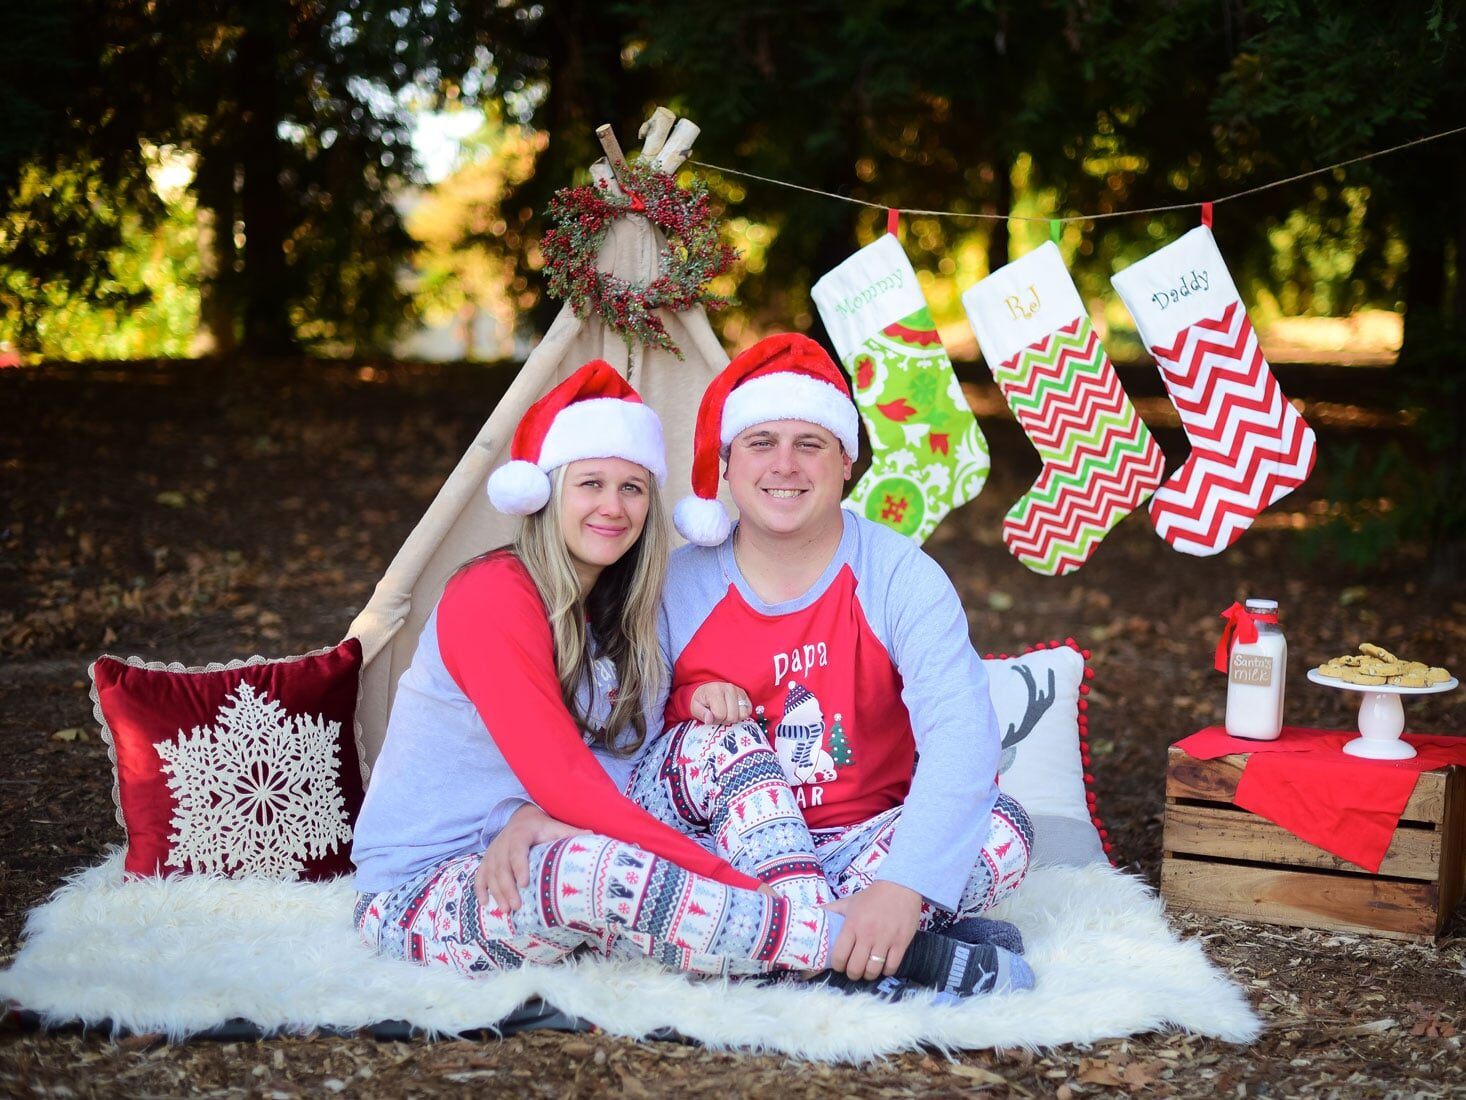 Christmas card ideas that take place outside in front of a tent | The Dating Divas